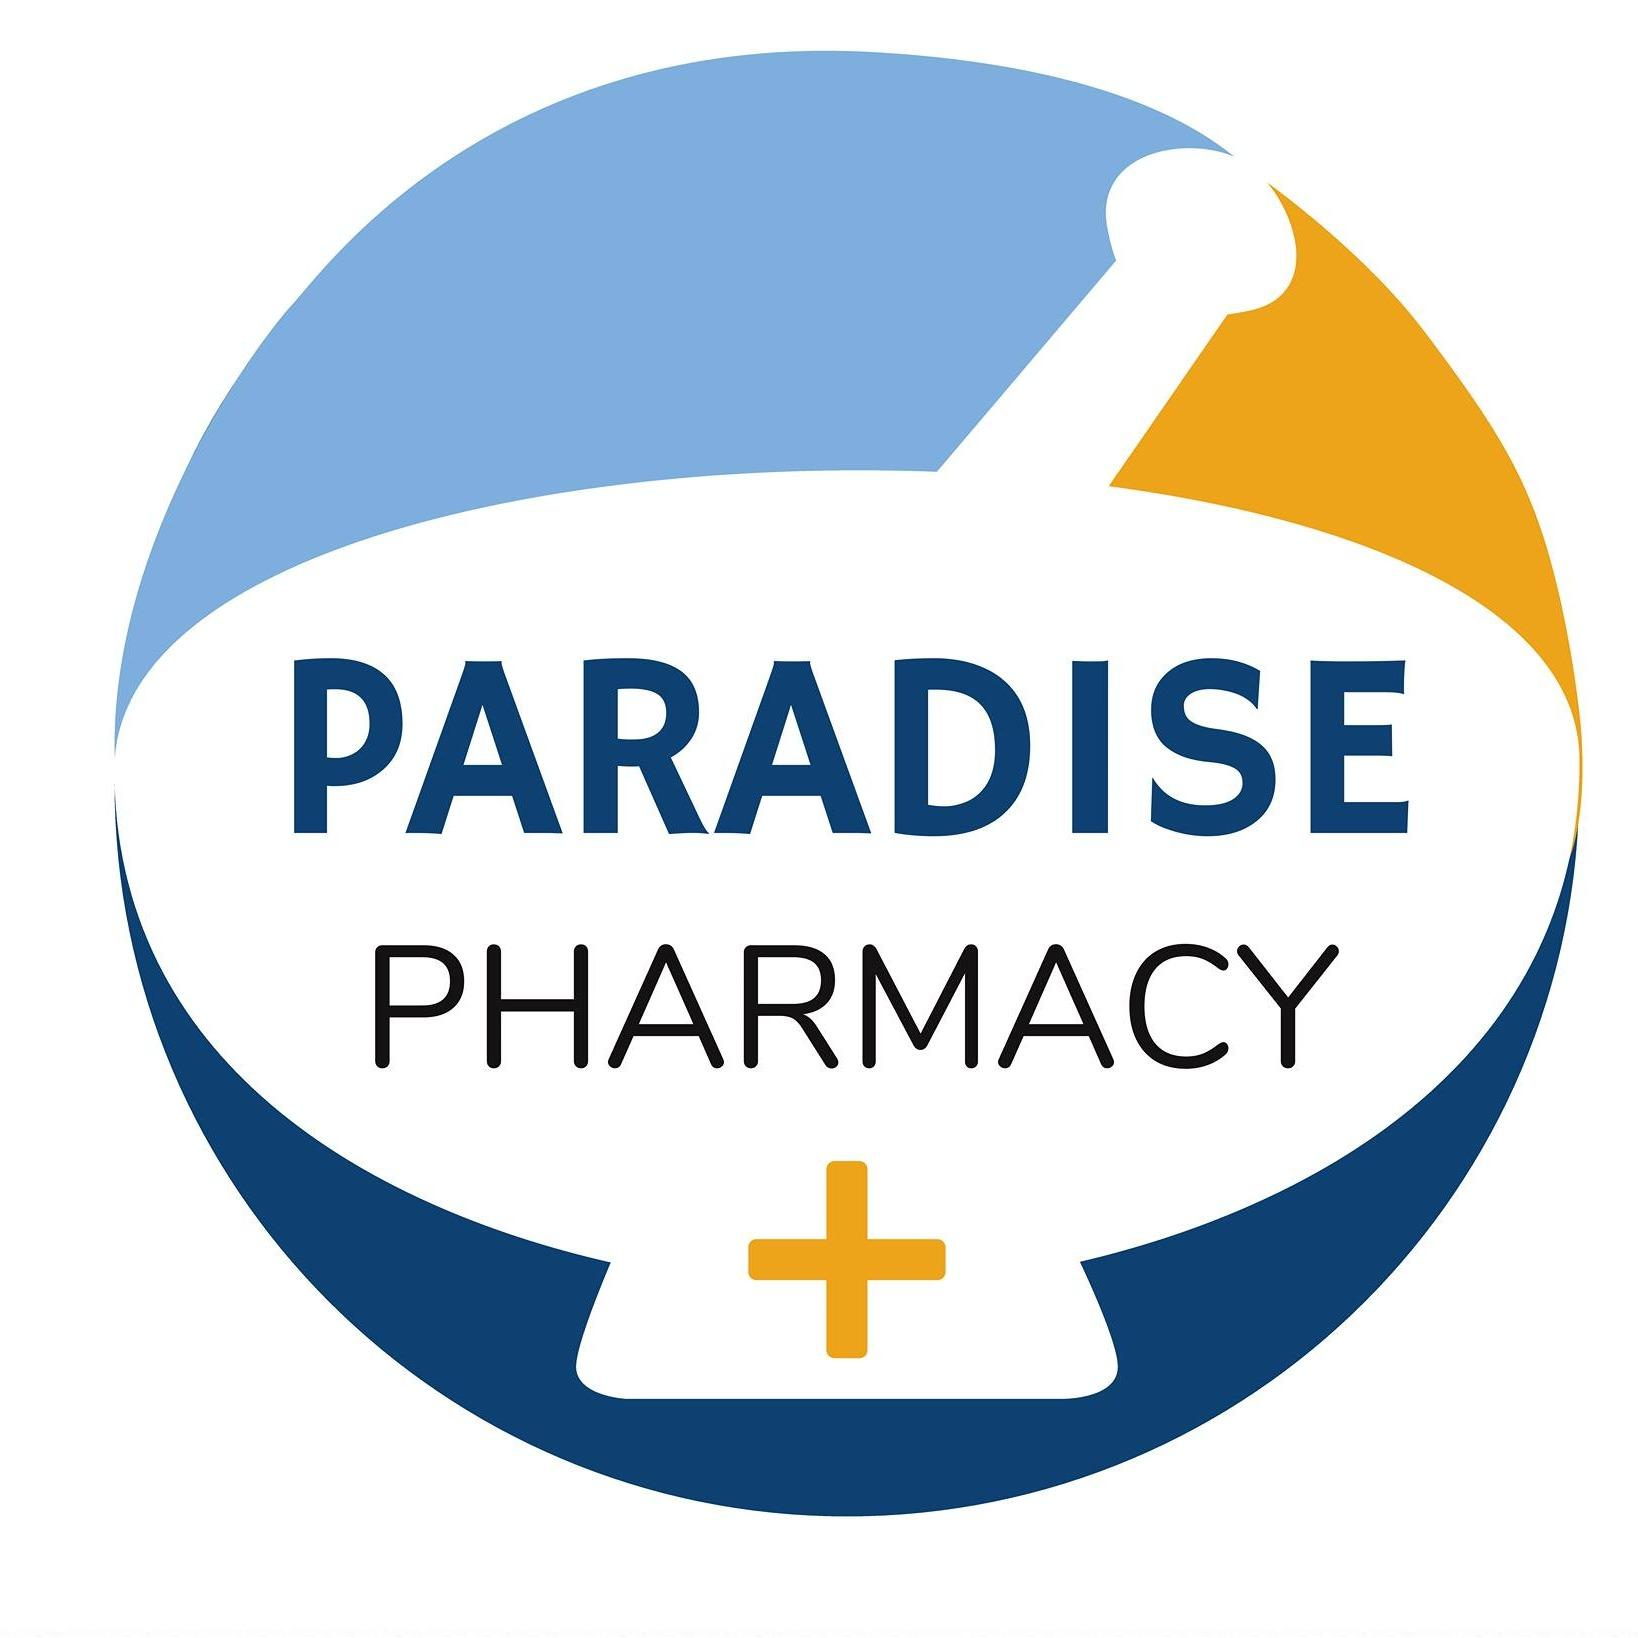 Paradise Pharmacy image 2